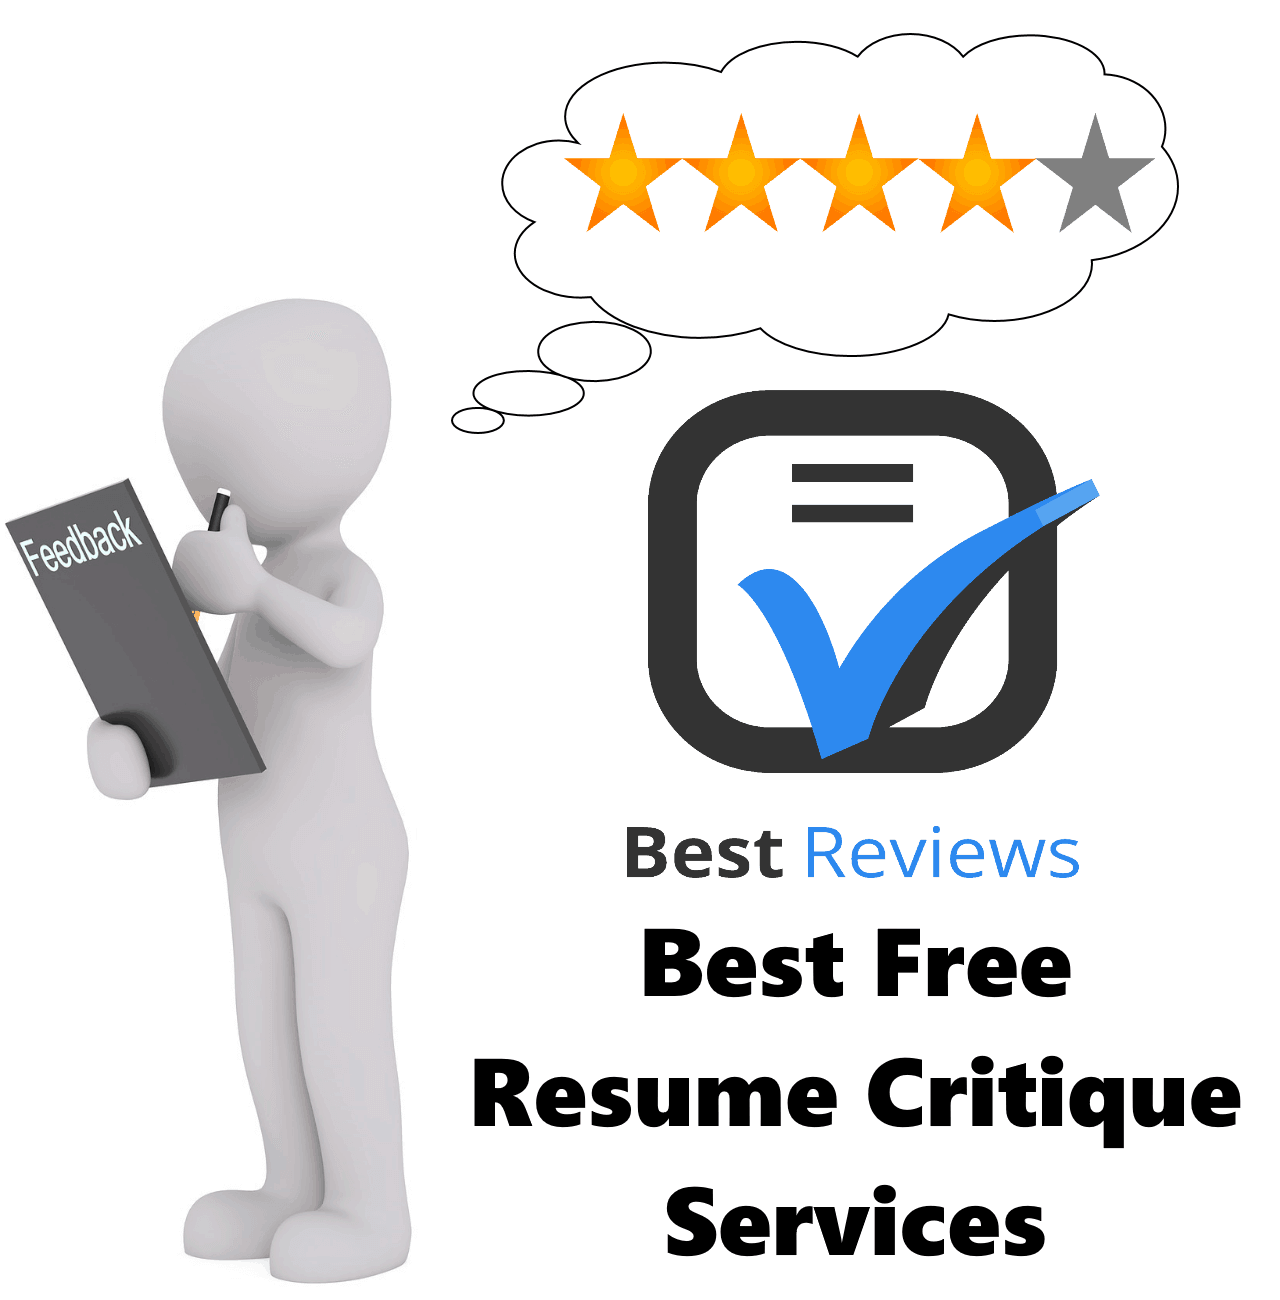 Delightful Please Check My Resume: The Best Free CV Critique Services   Resume  Builders Reviews  Free Resume Critique